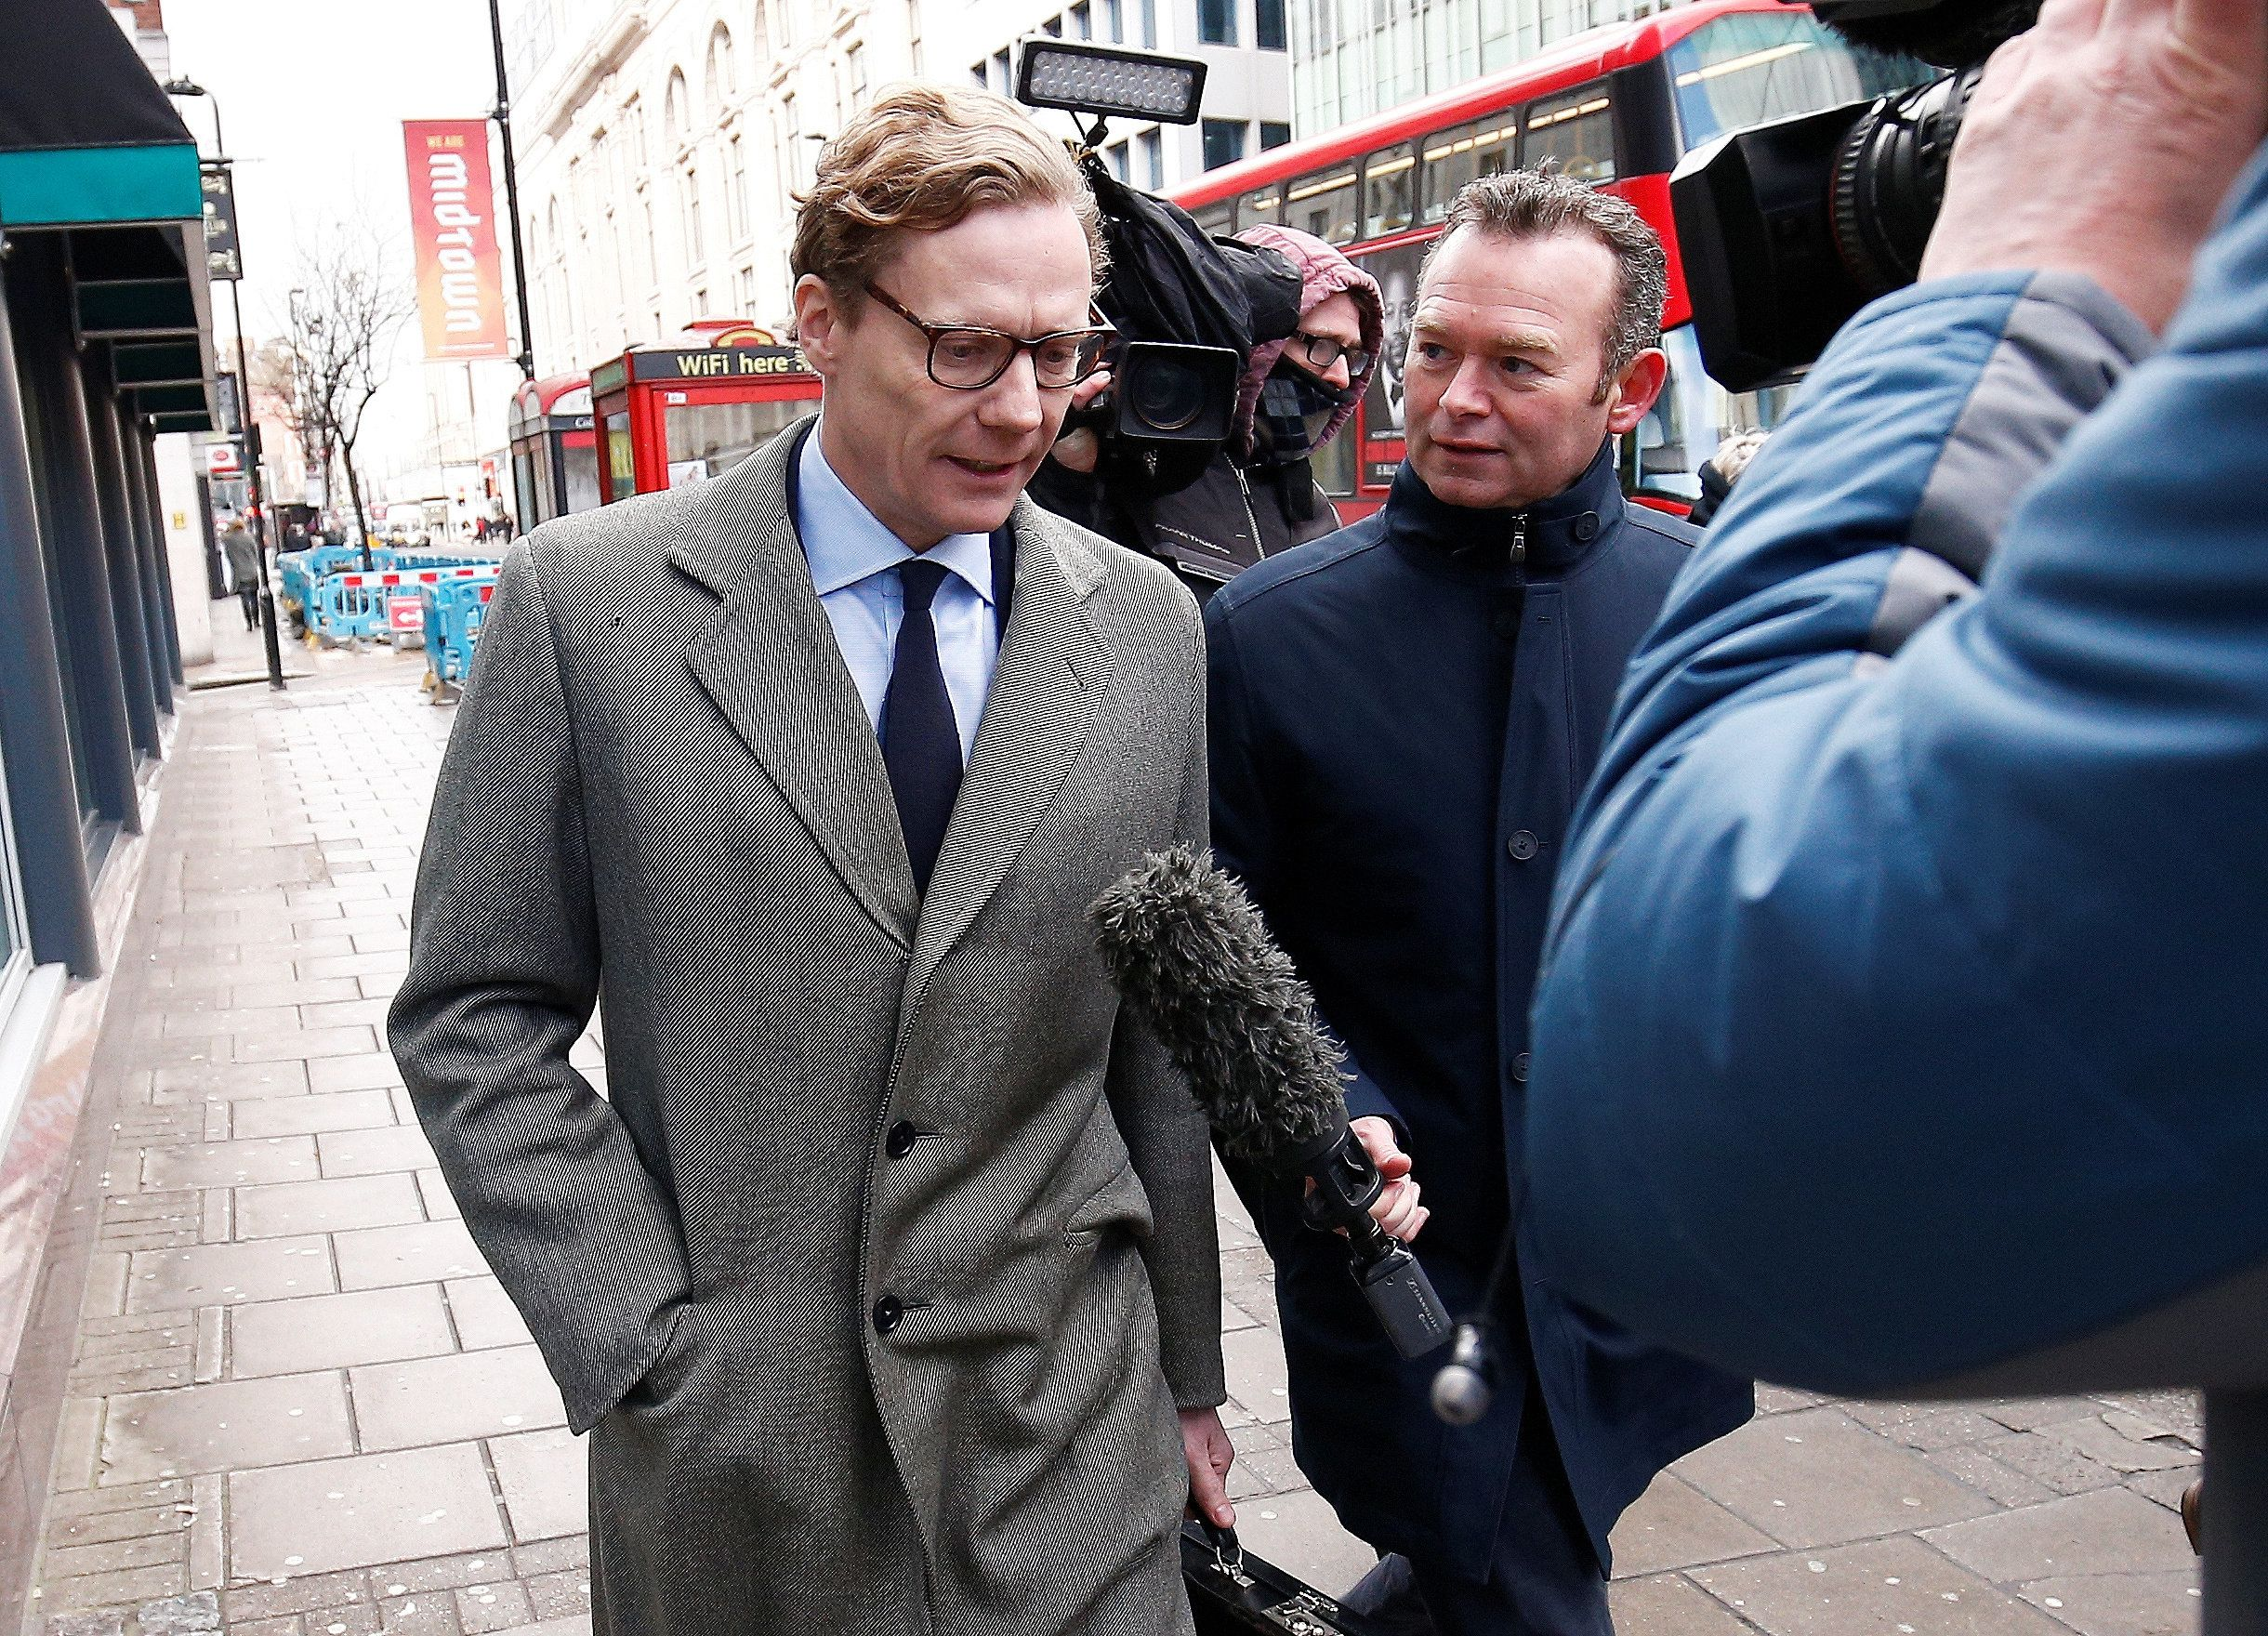 What You Need To Know About Cambridge Analytica And